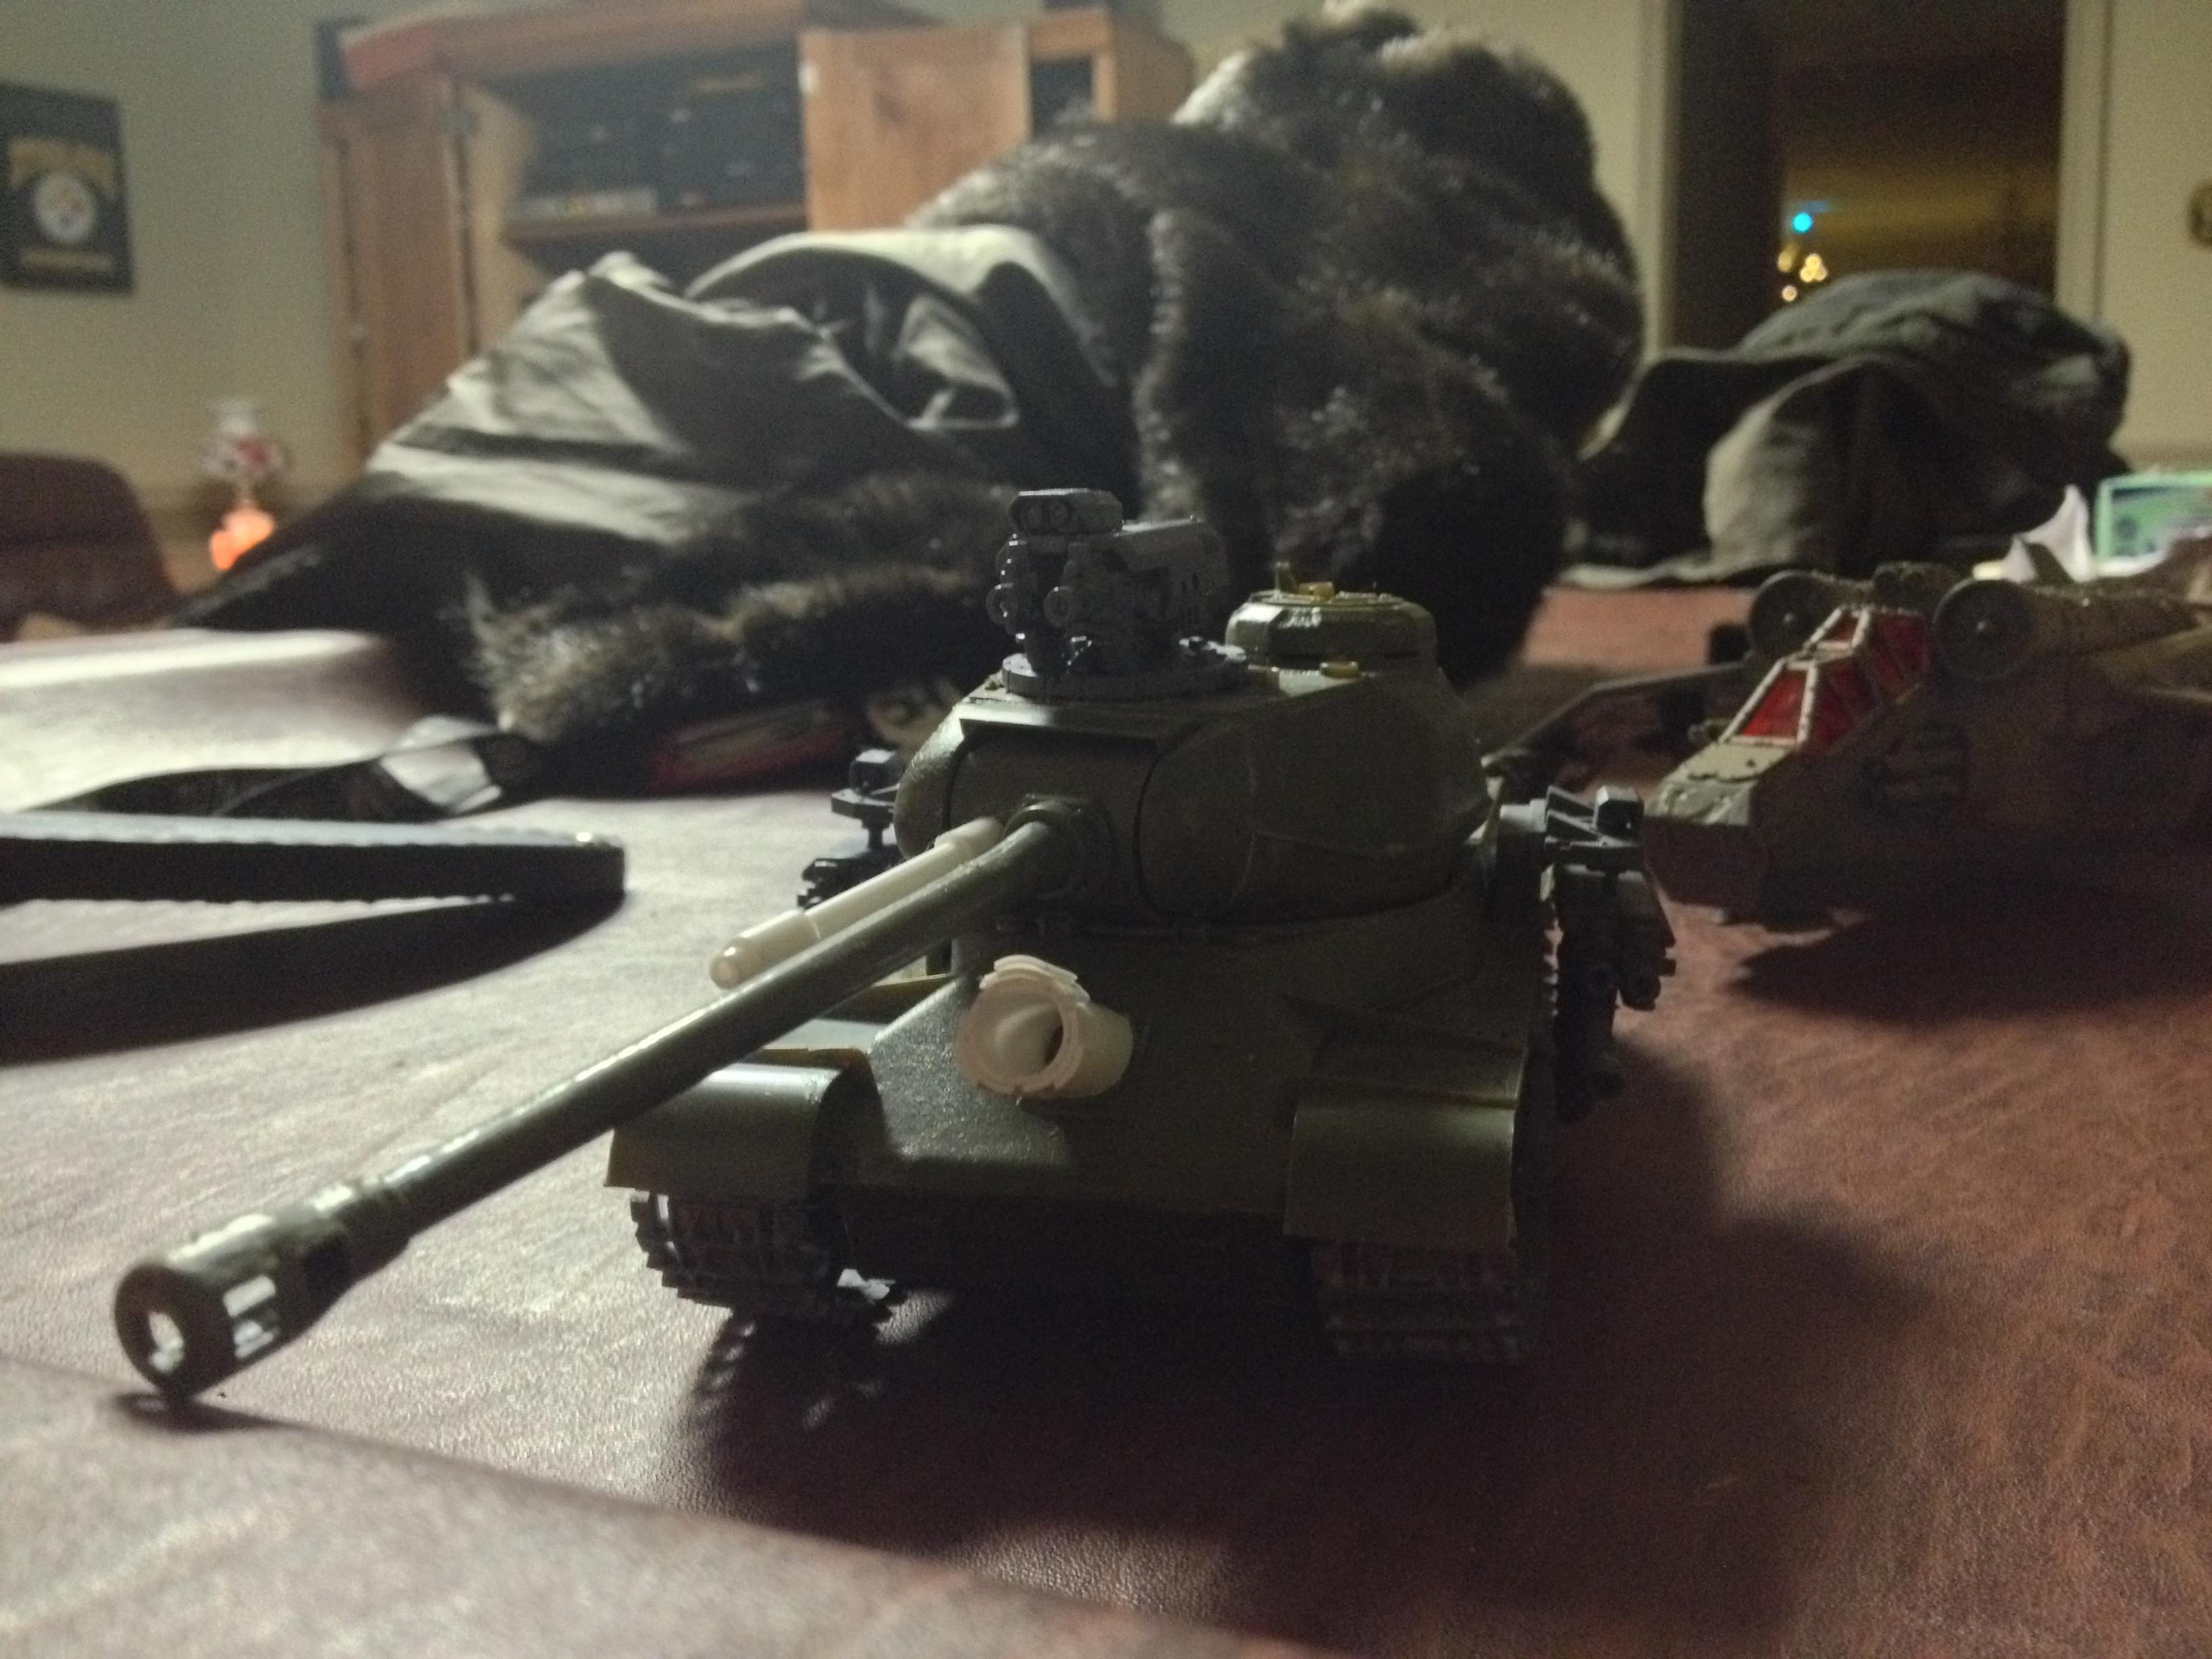 Baneblade with scratch built co-ax autocannon and hull-mounted demolisher cannon